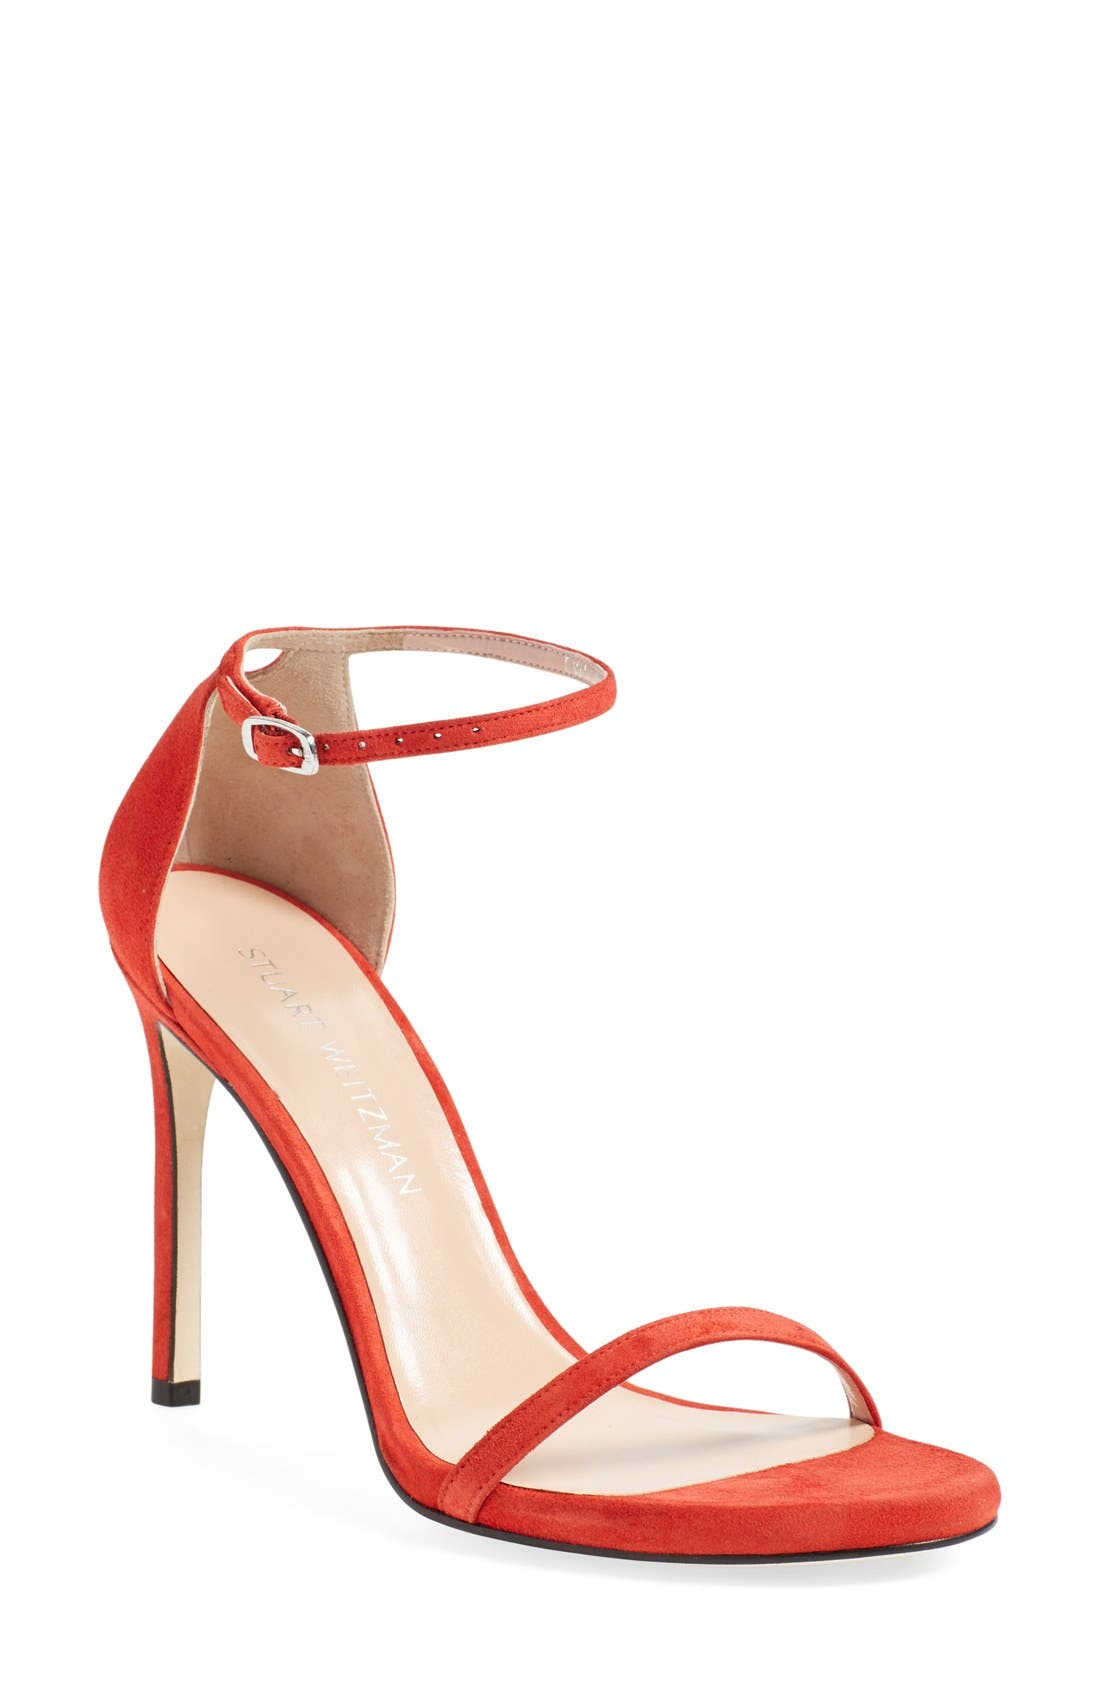 Nudistsong Ankle Strap Sandal,                             Main thumbnail 43, color,